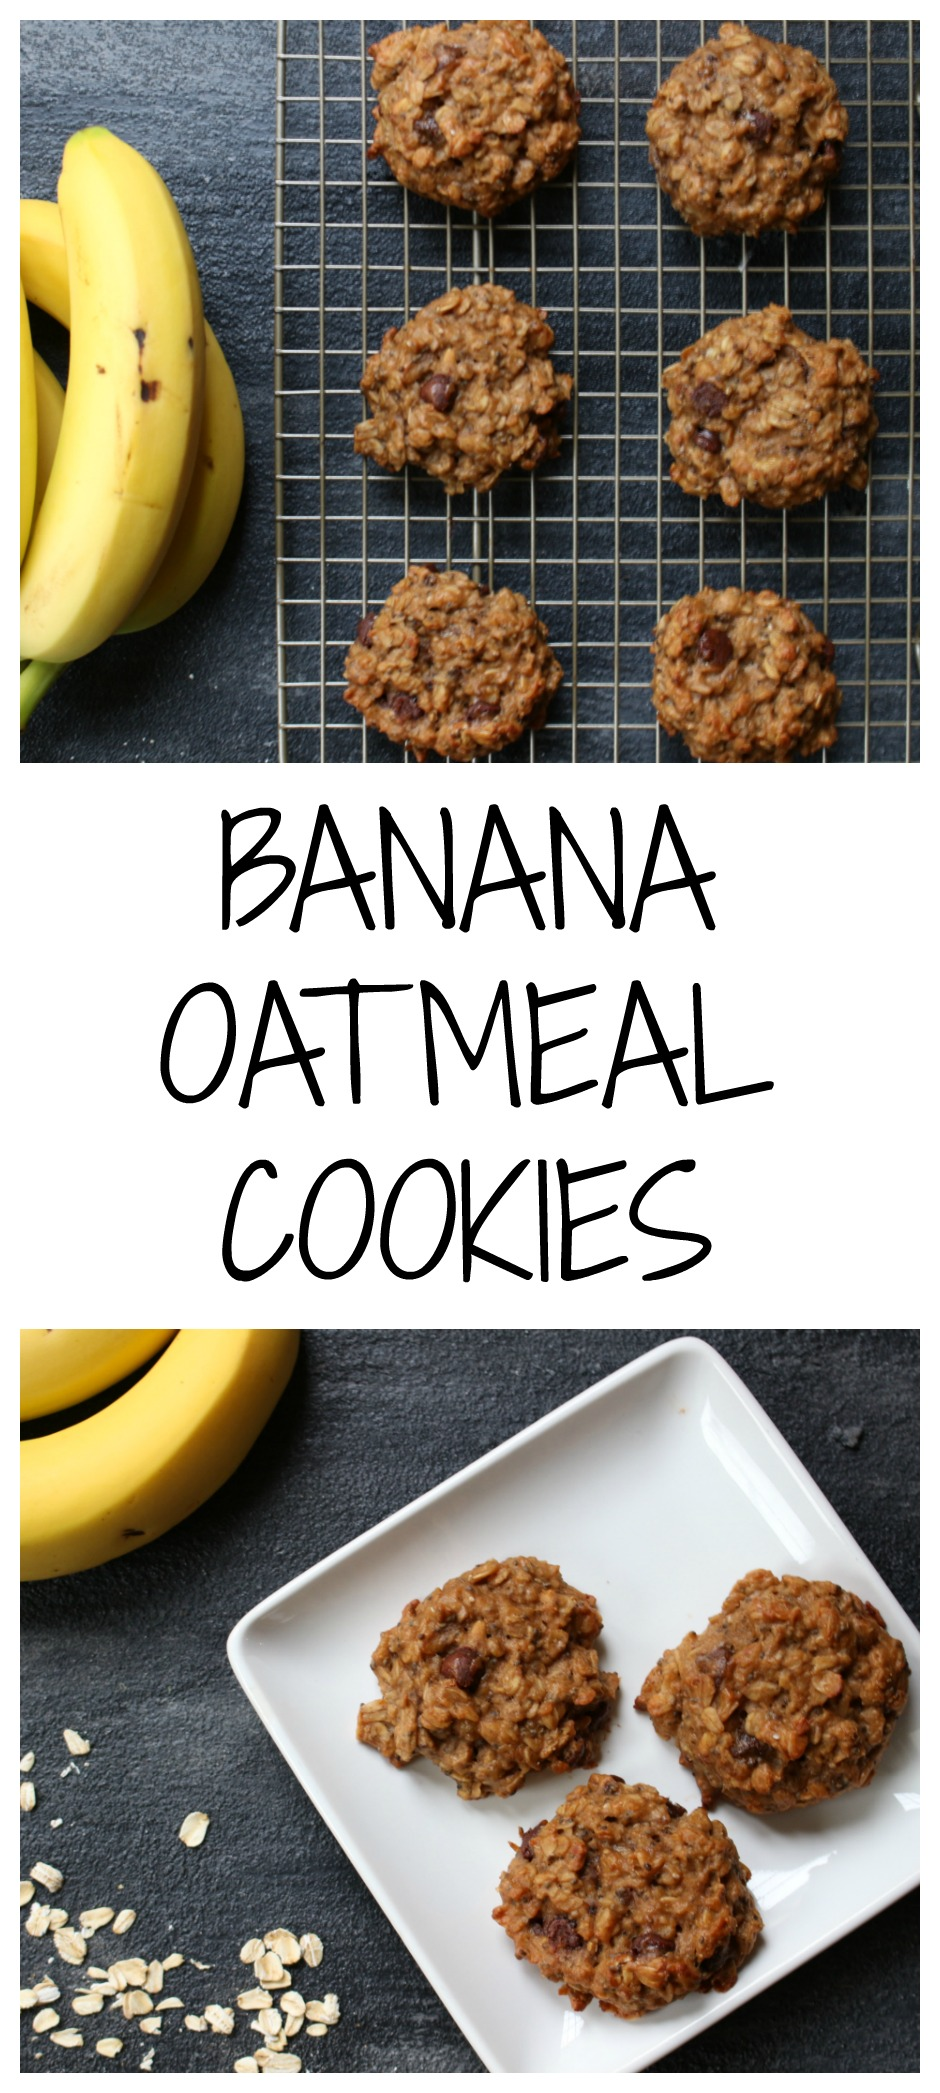 Banana oatmeal cookies make a perfect breakfast on-the-go or after school snack, and are the perfect way to use ripe bananas!